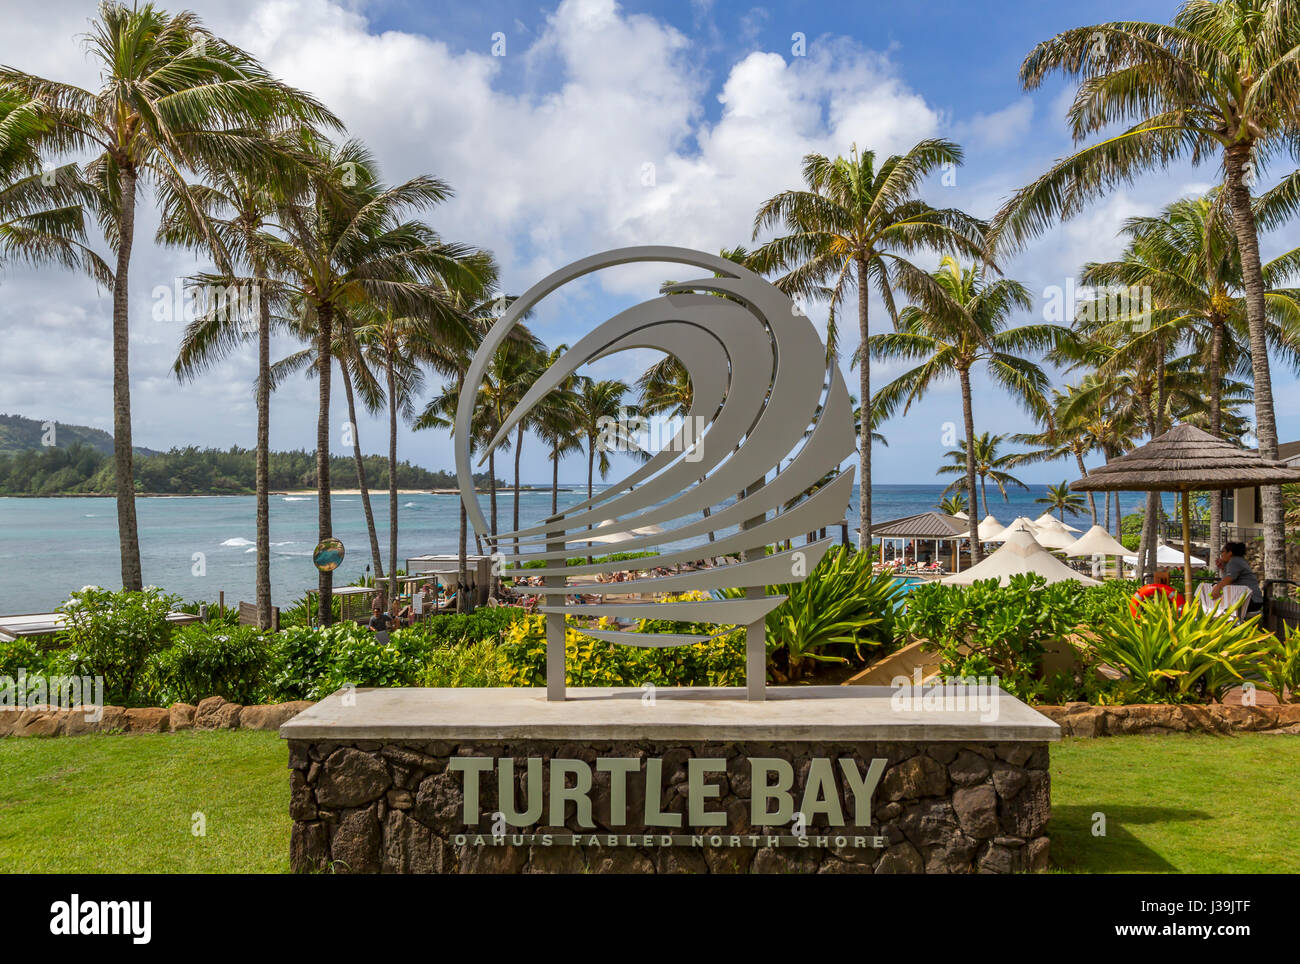 Nov. 2 2015, Turtle bay Resort, Kahuku Hawaii , view of sign, Ocean and pool bar - Stock Image